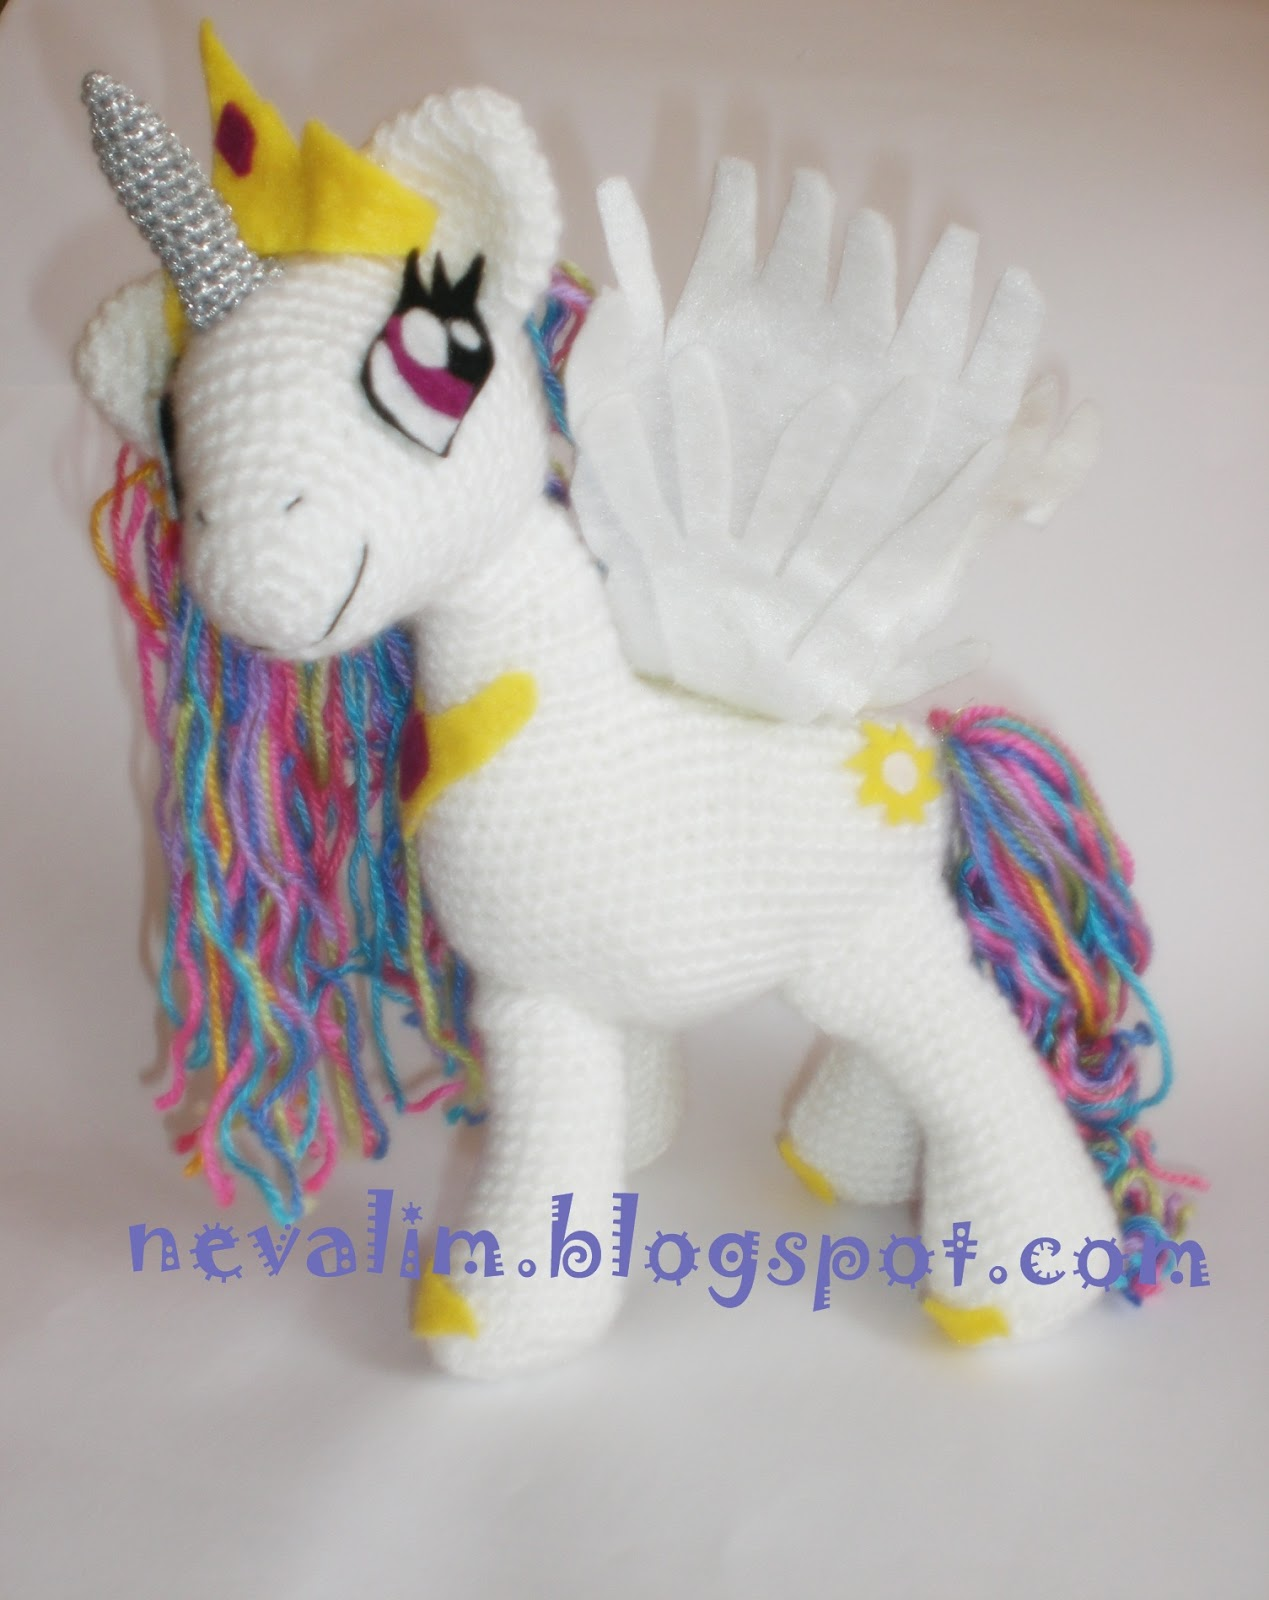 Amigurumi Pattern My Little Pony : HAYATIMIN ?c?NDEN.....: amigurumi my little pony princess ...